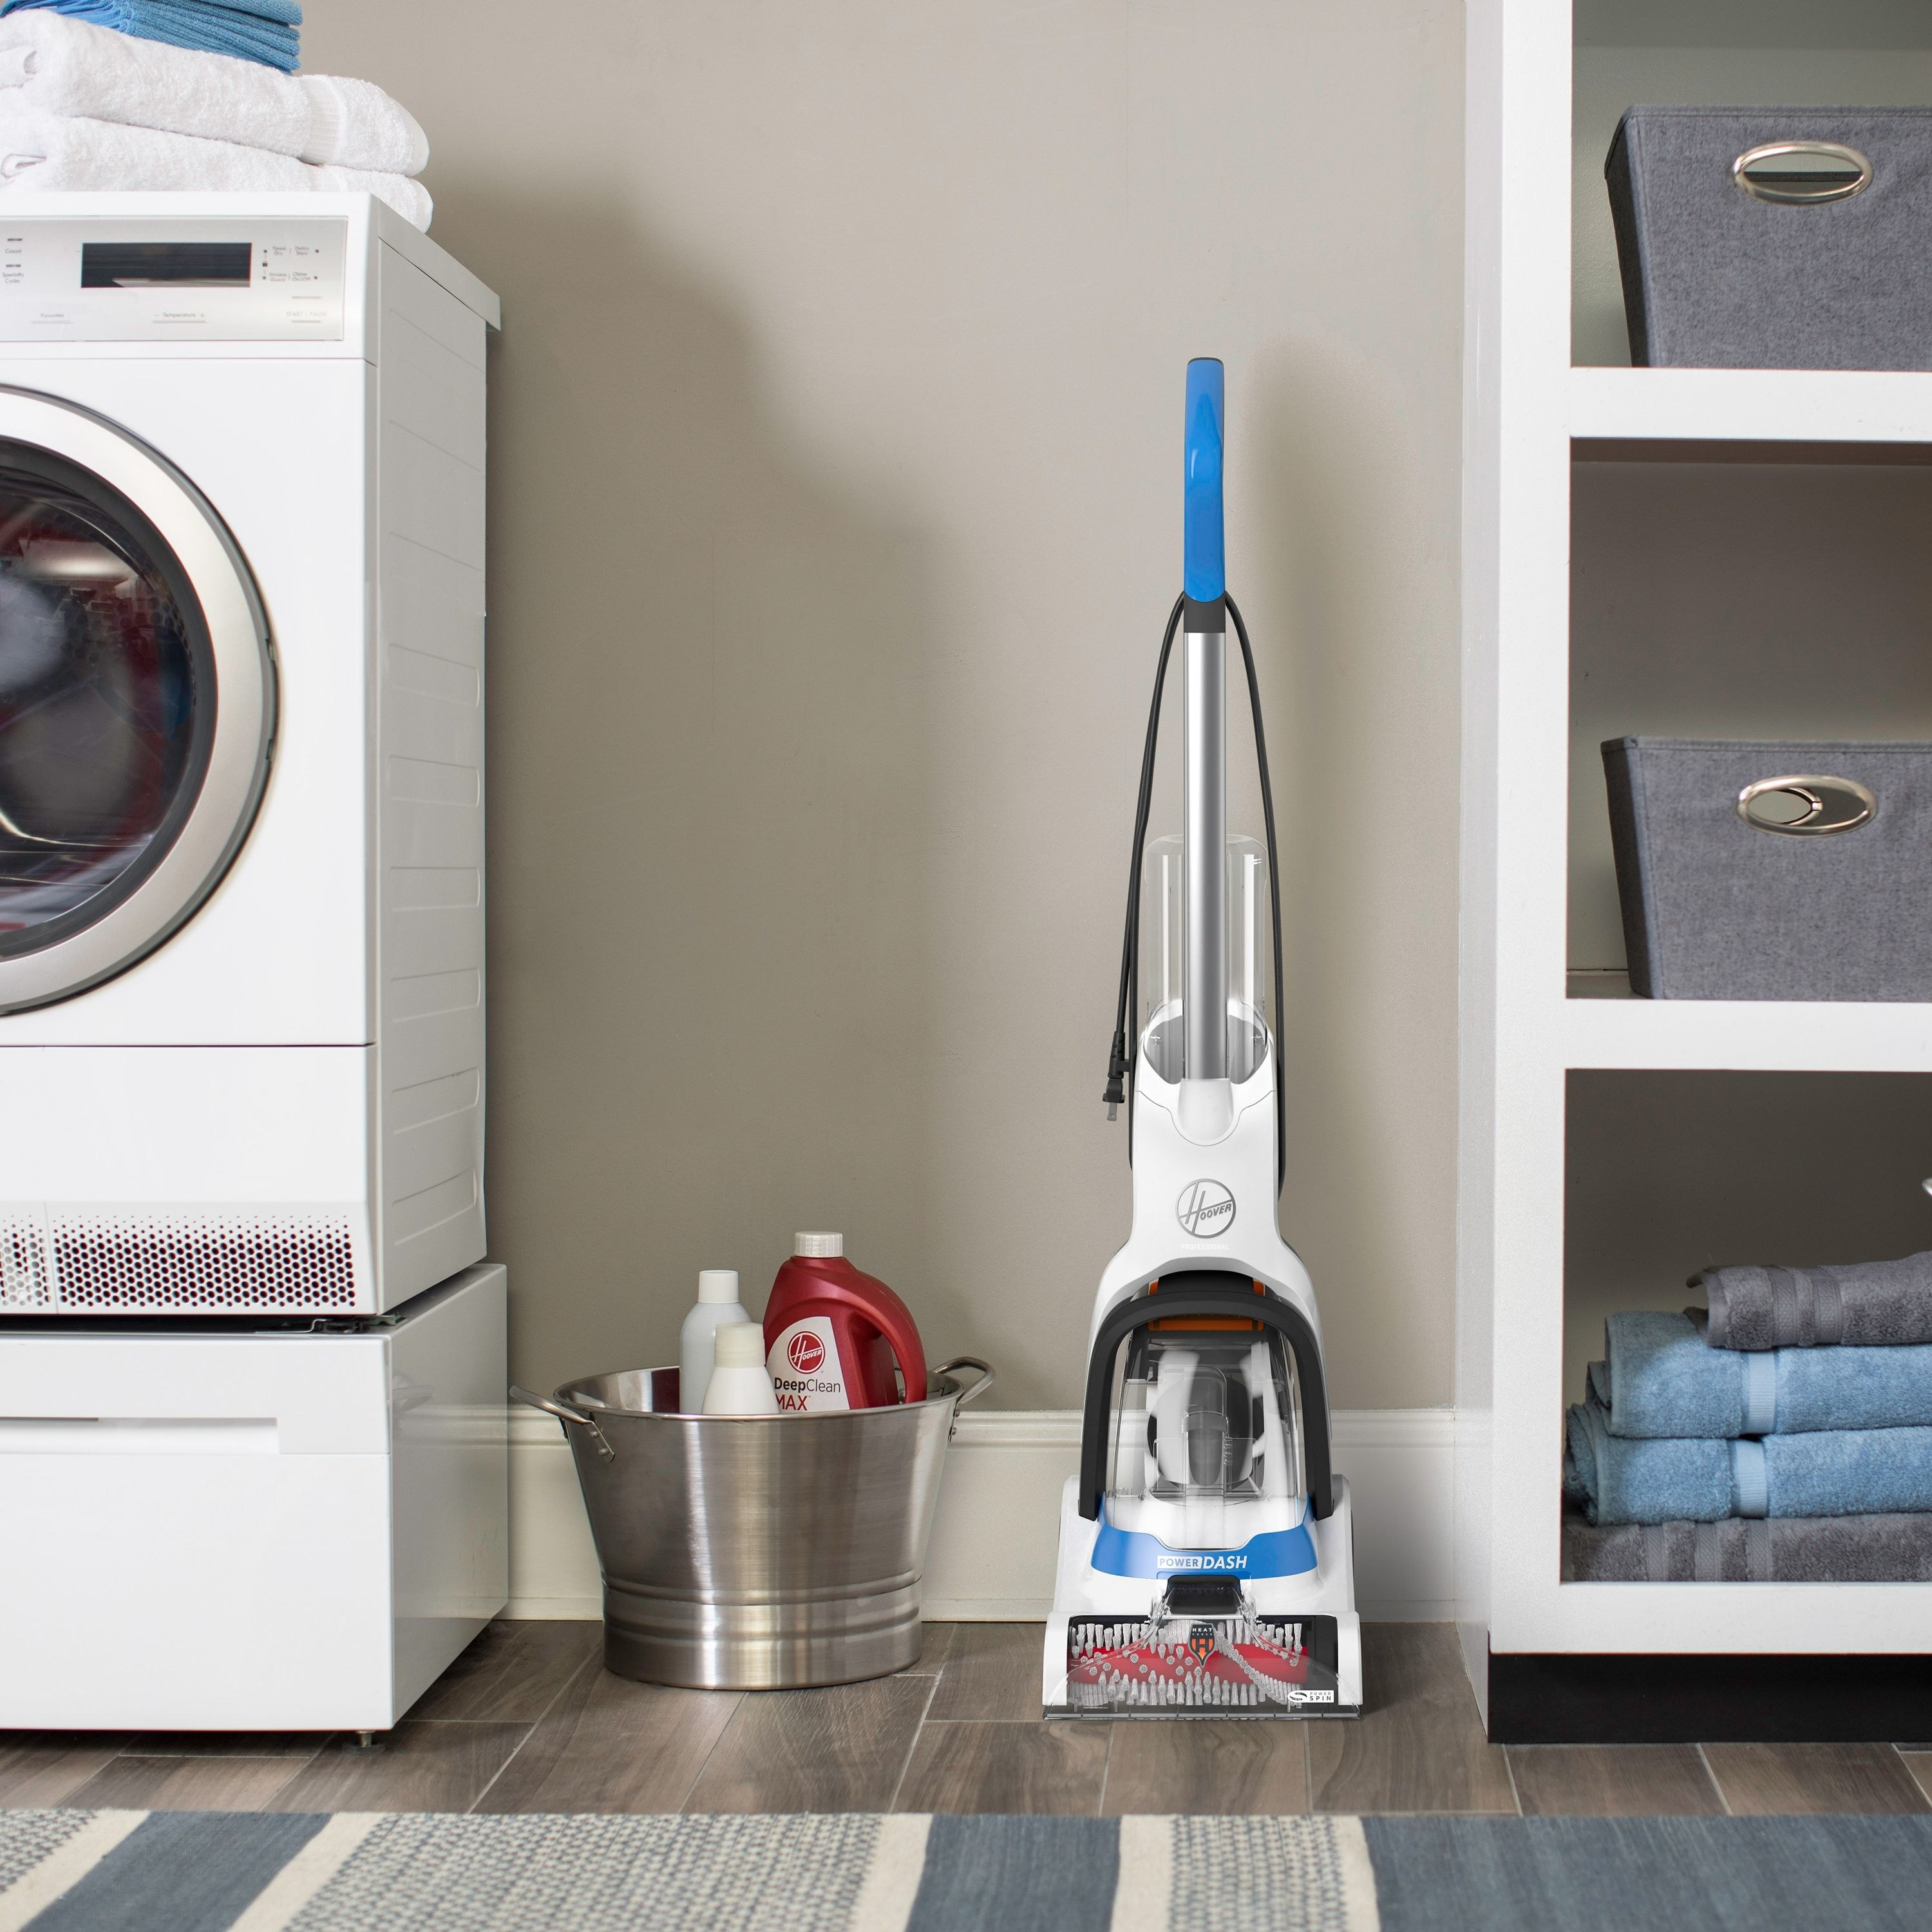 Hoover pet cleaner in a laundry room